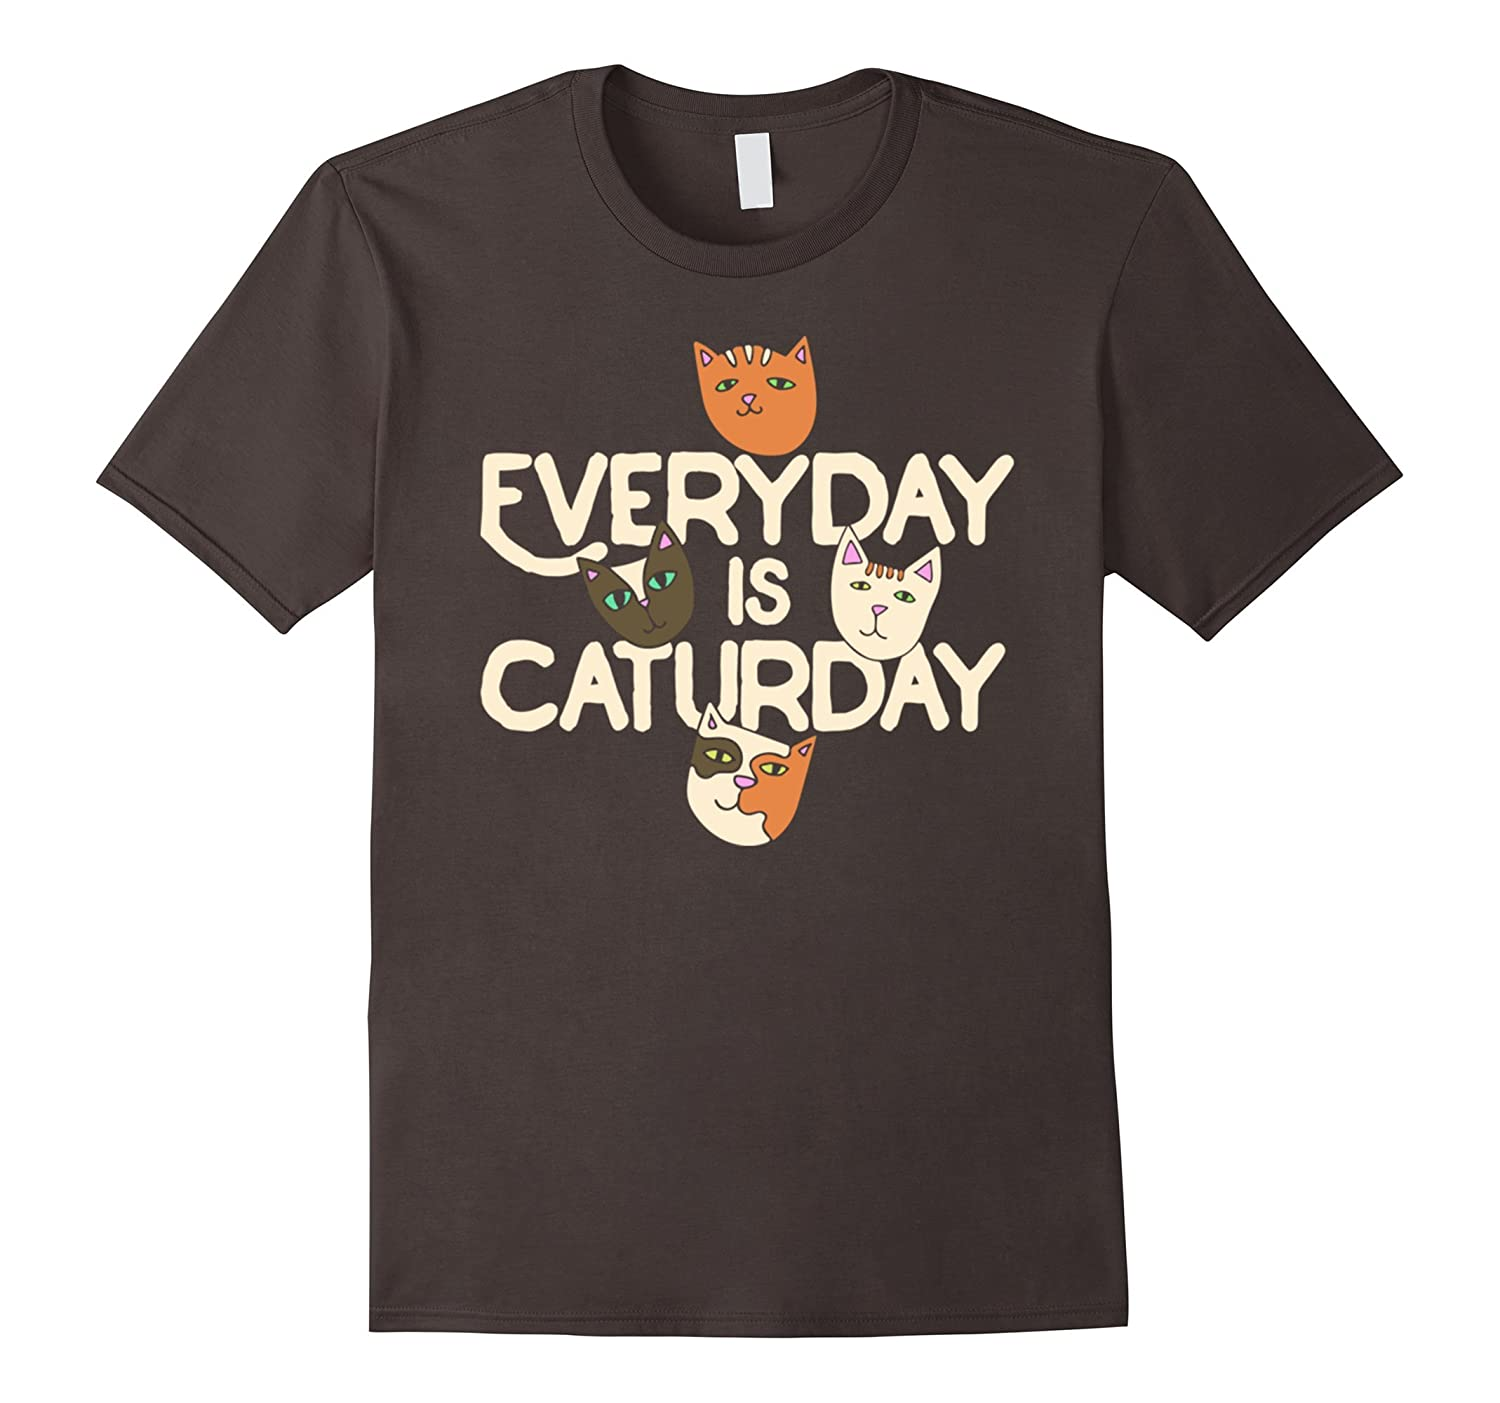 Every Day For Me Is Caturday –Yolotee